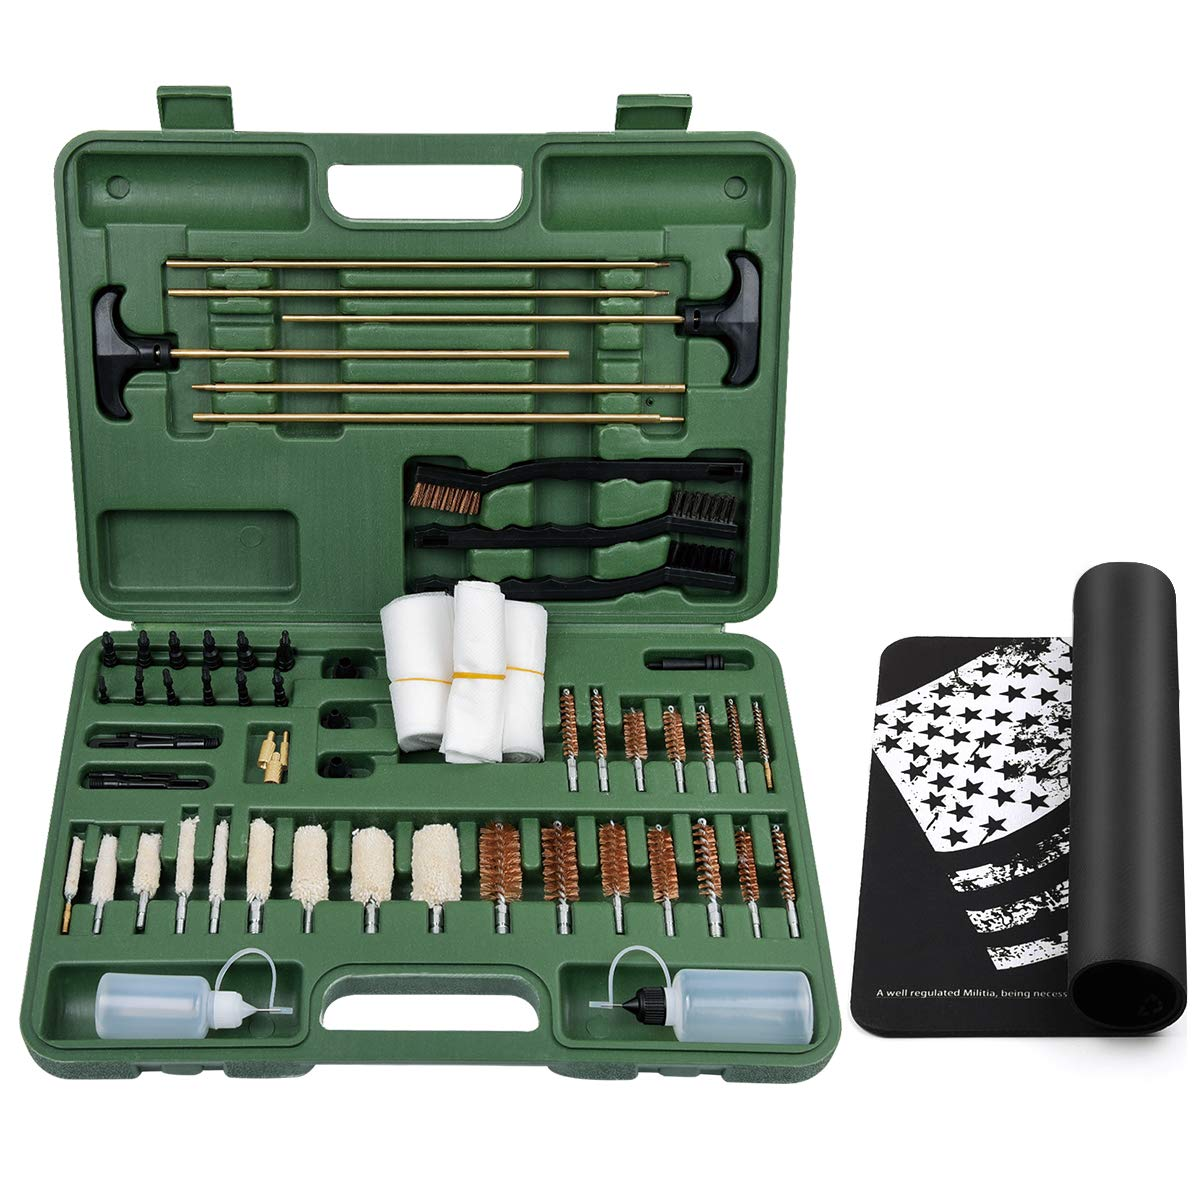 IUNIO Universal Gun Cleaning Kit Supplies with Gun Cleaning Mat Rifle Pistol Handgun Shotgun Brushes Patches Bottles Brass Rods Jags Mops Slotted Tips Carrying Case for Hunting Shooting